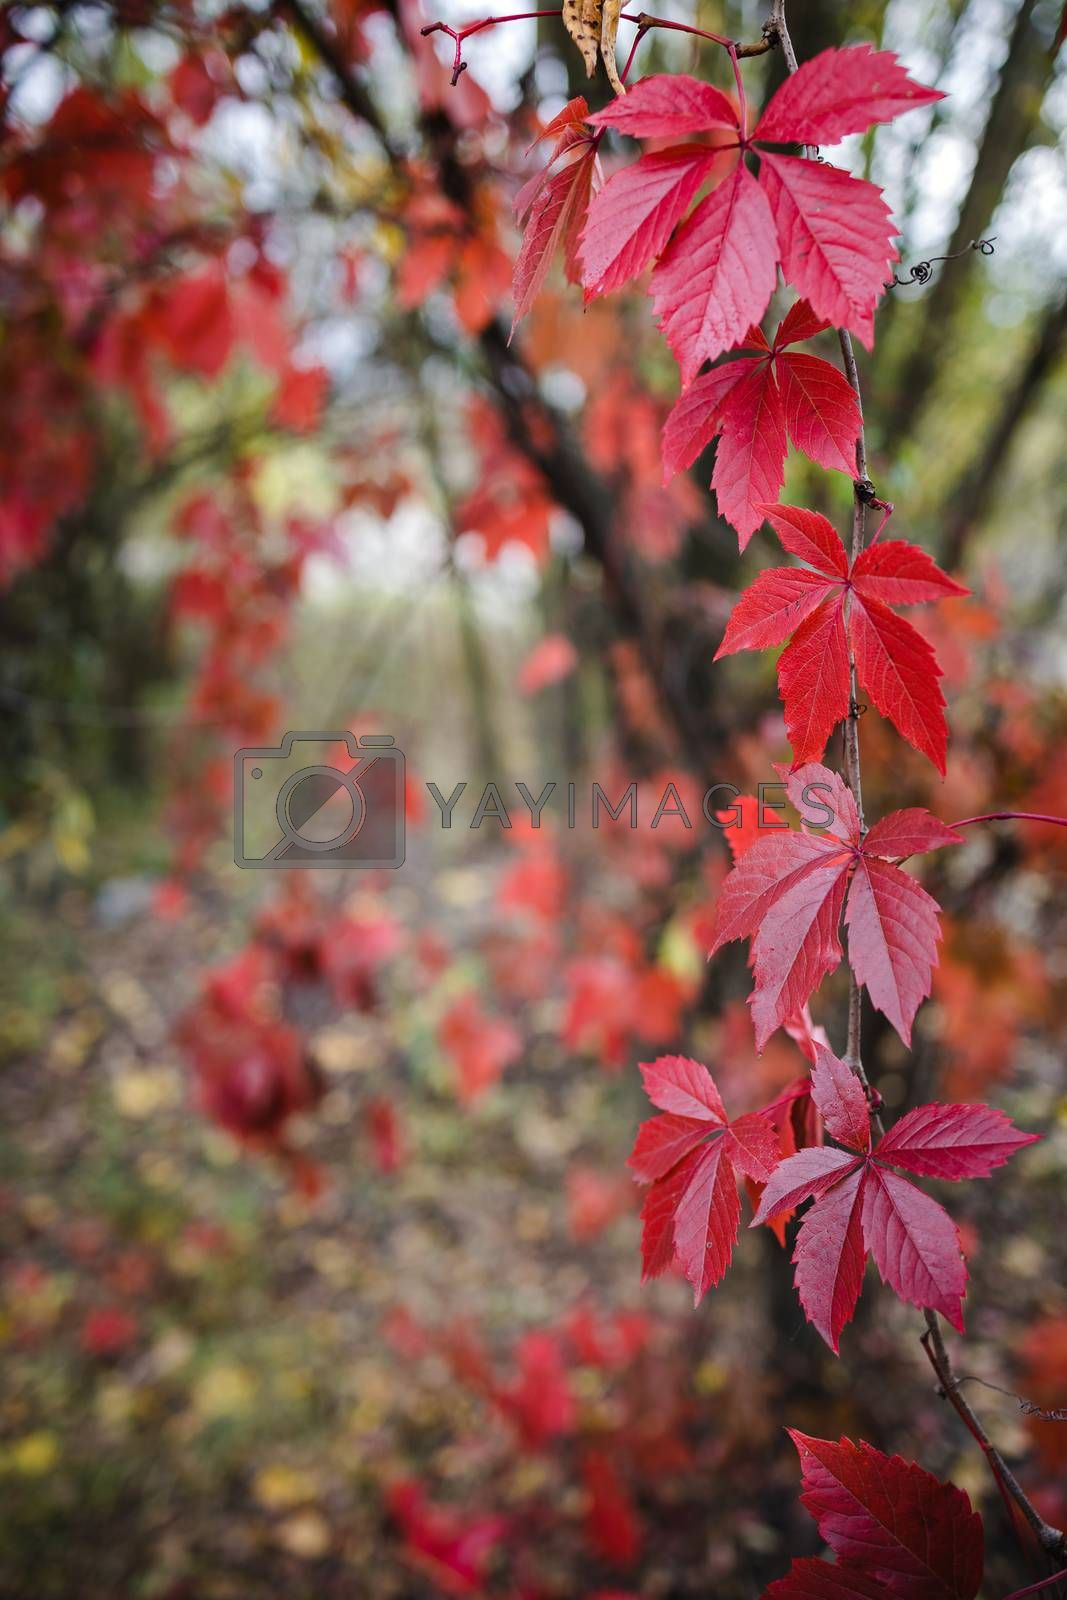 Royalty free image of bright red autumn leaves of wild grapes in the forest in blur, lush background, copy space by Tanacha